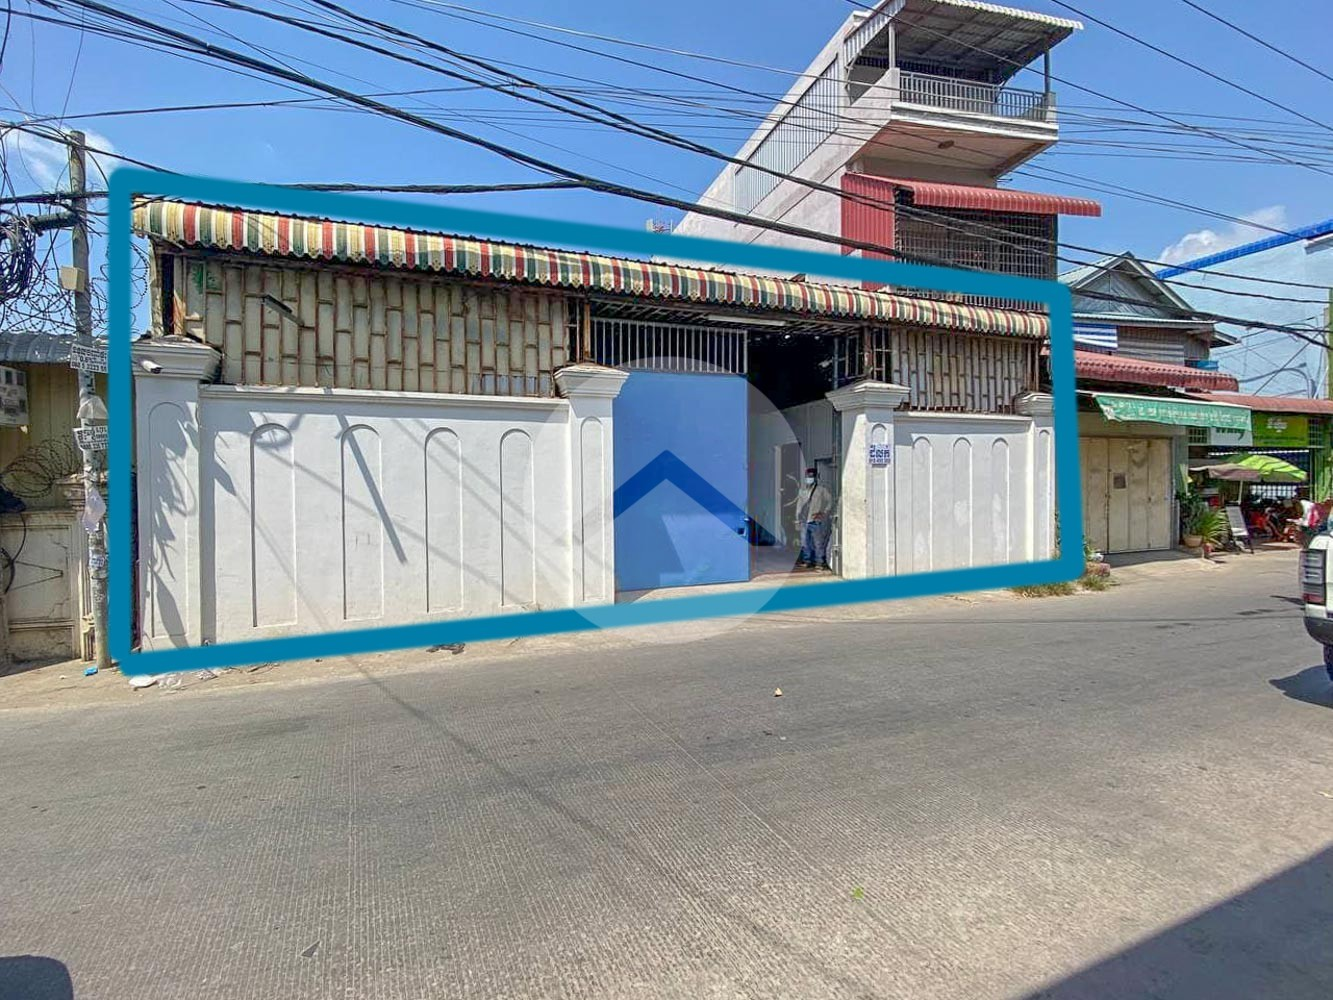 390 Sqm Warehouse For Sale - Khan Meanchey, Phnom Penh